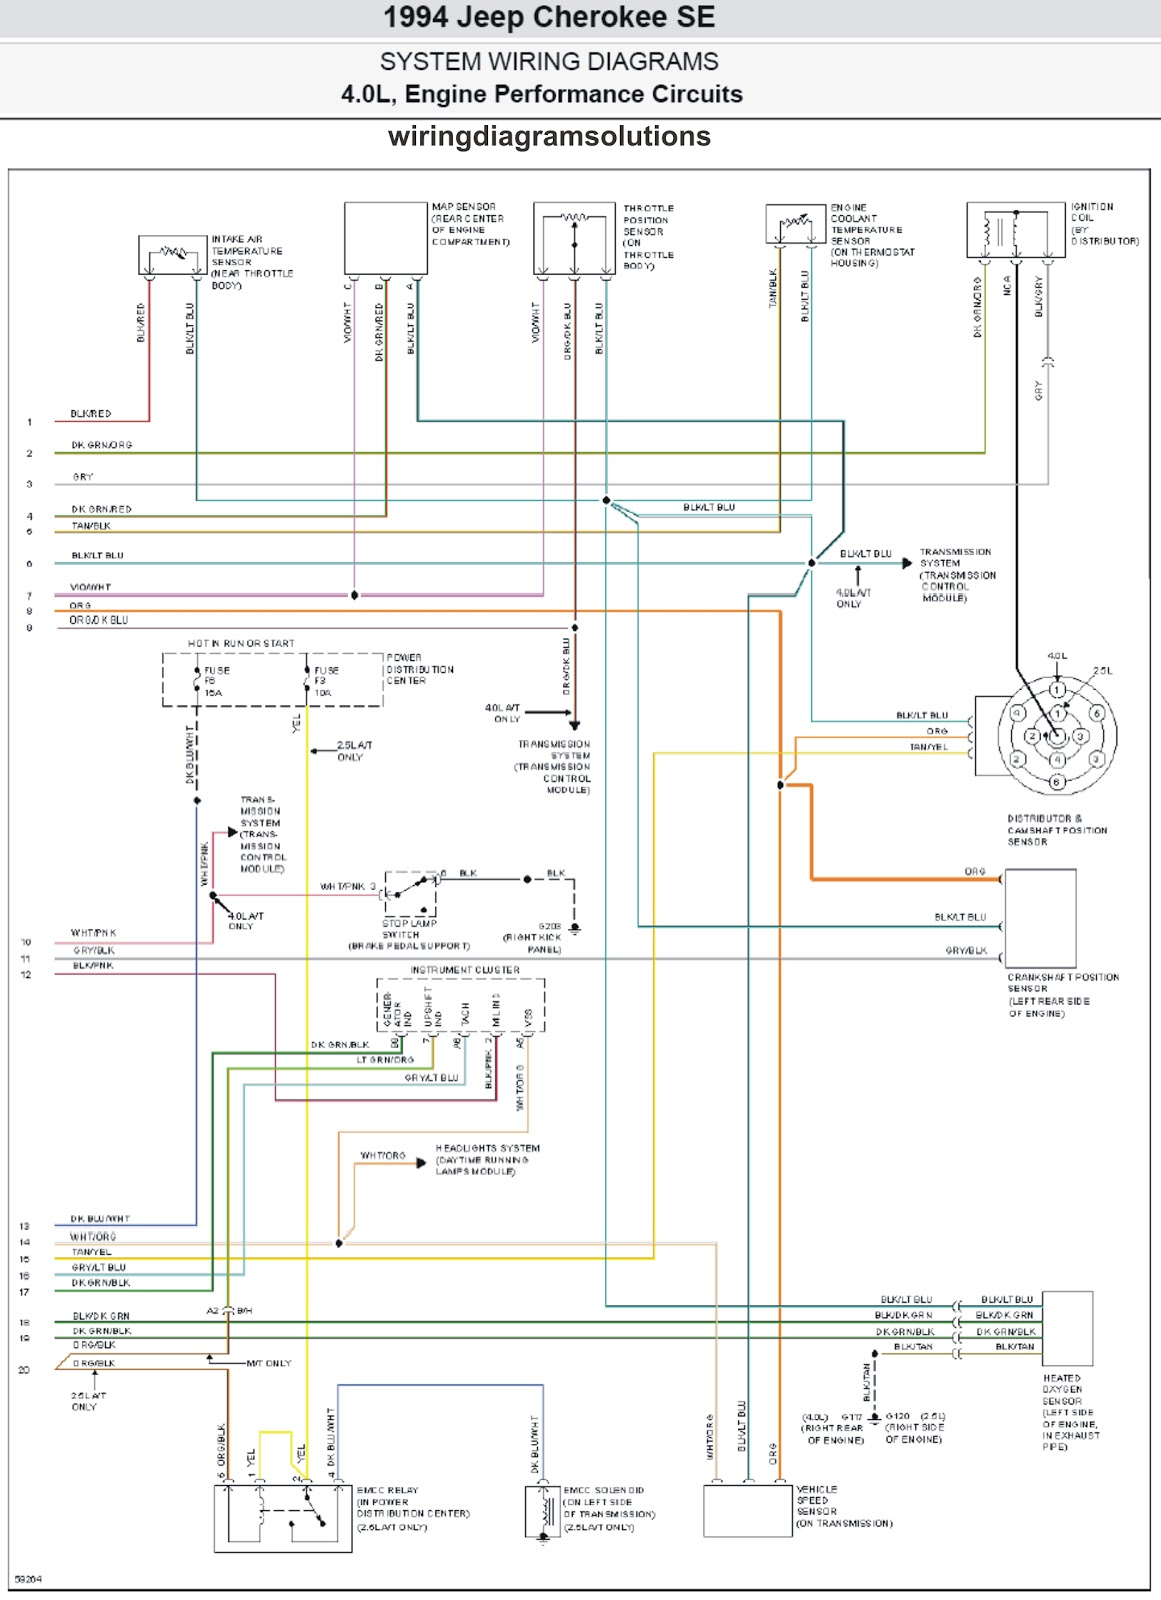 1994+Jeep+Cherokee+SE_2 2005 grand cherokee wiring diagram 2005 free wiring diagrams  at alyssarenee.co